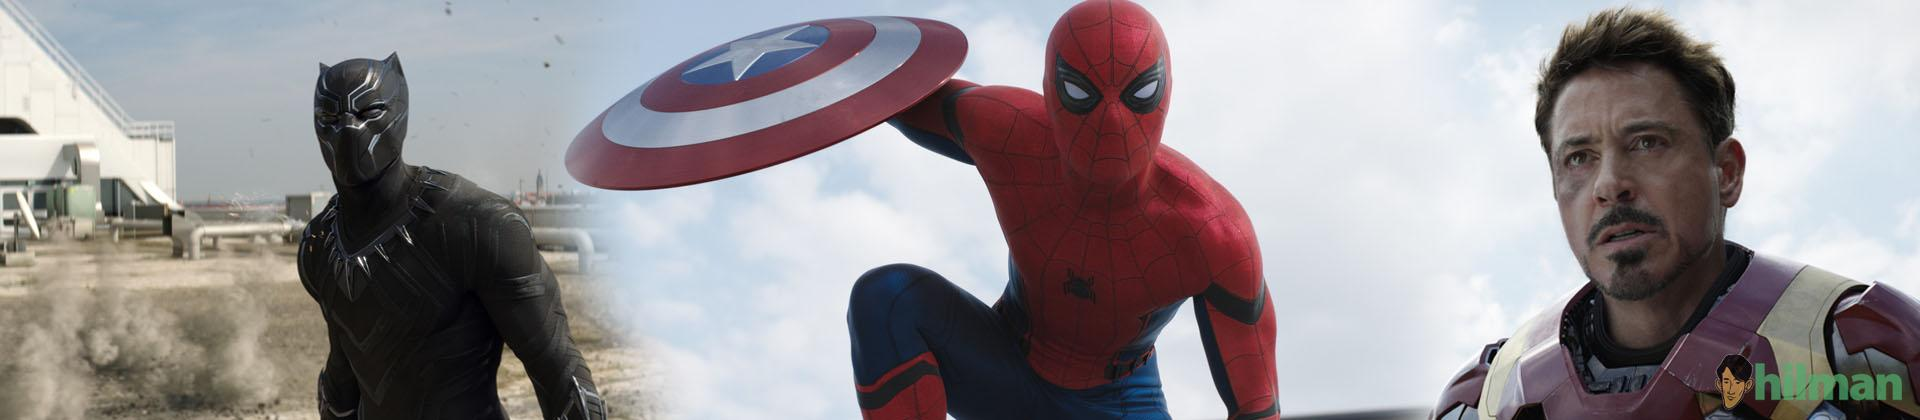 Kemunculan SpiderMan di Trailer Terbaru Film Captain America: Civil War